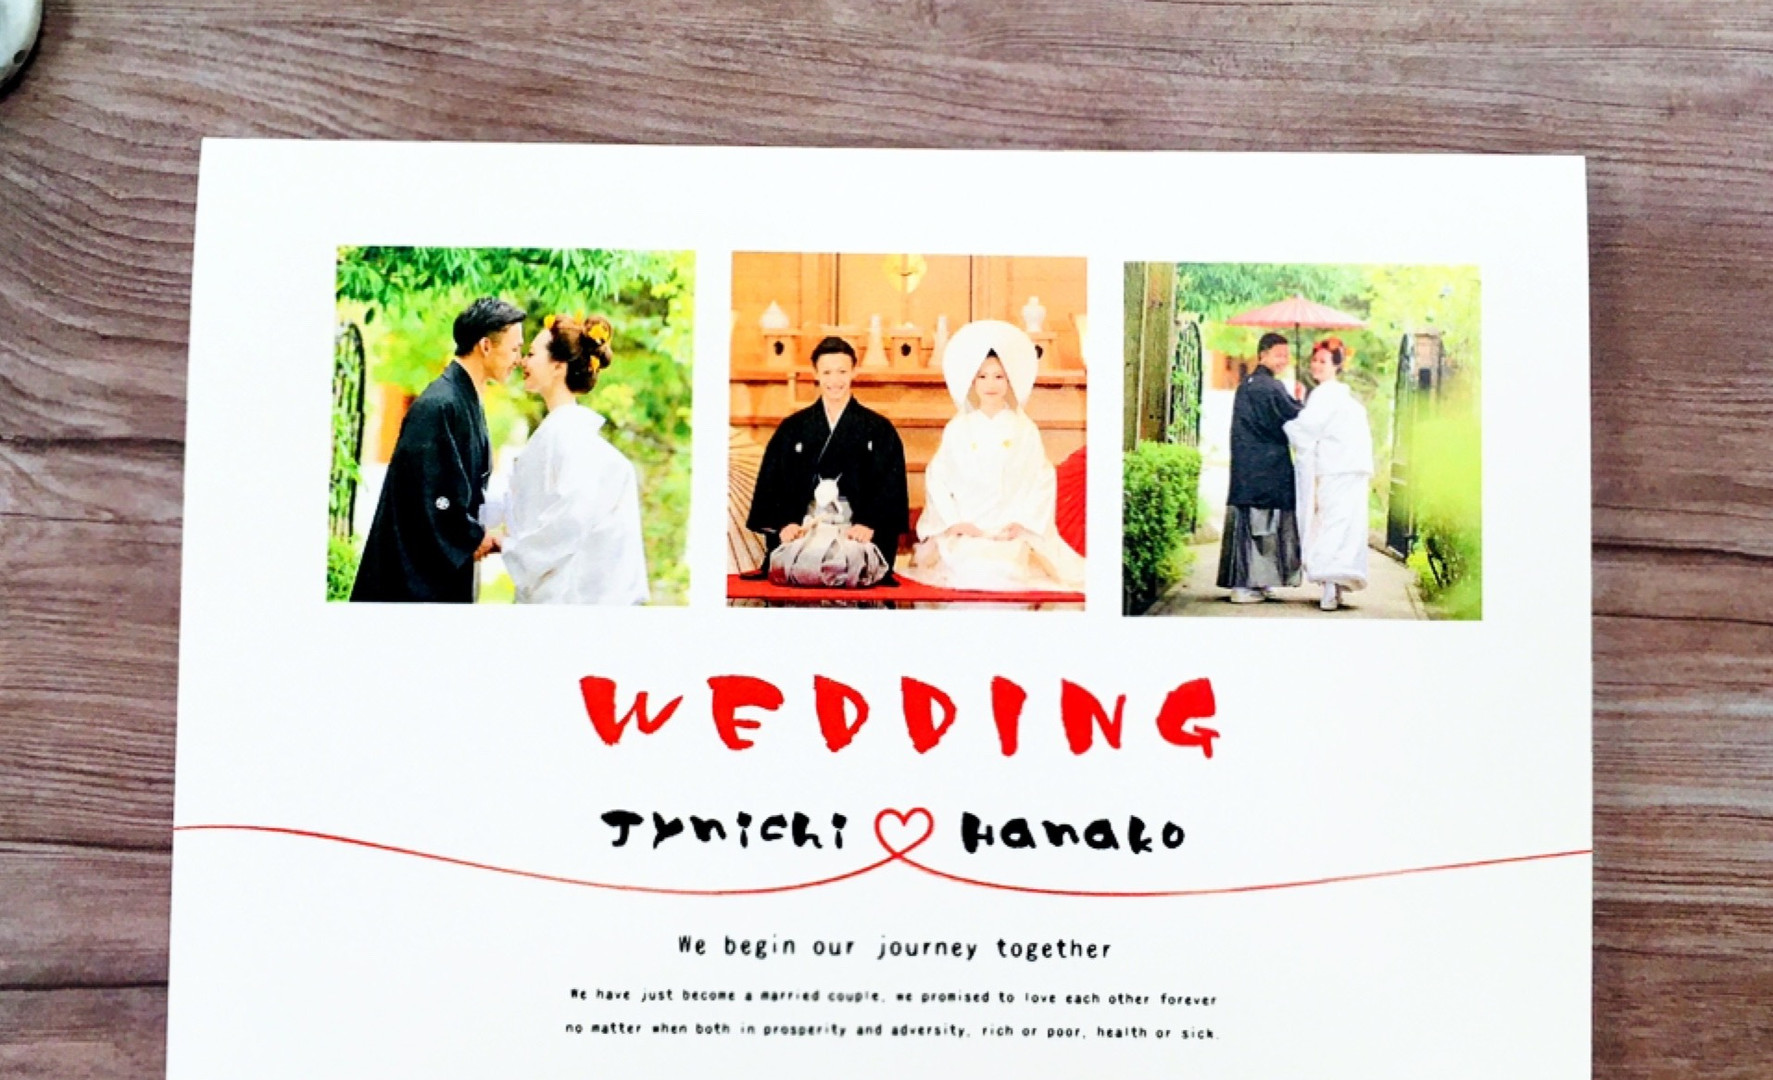 Just married デザイン9-A-1.jpg